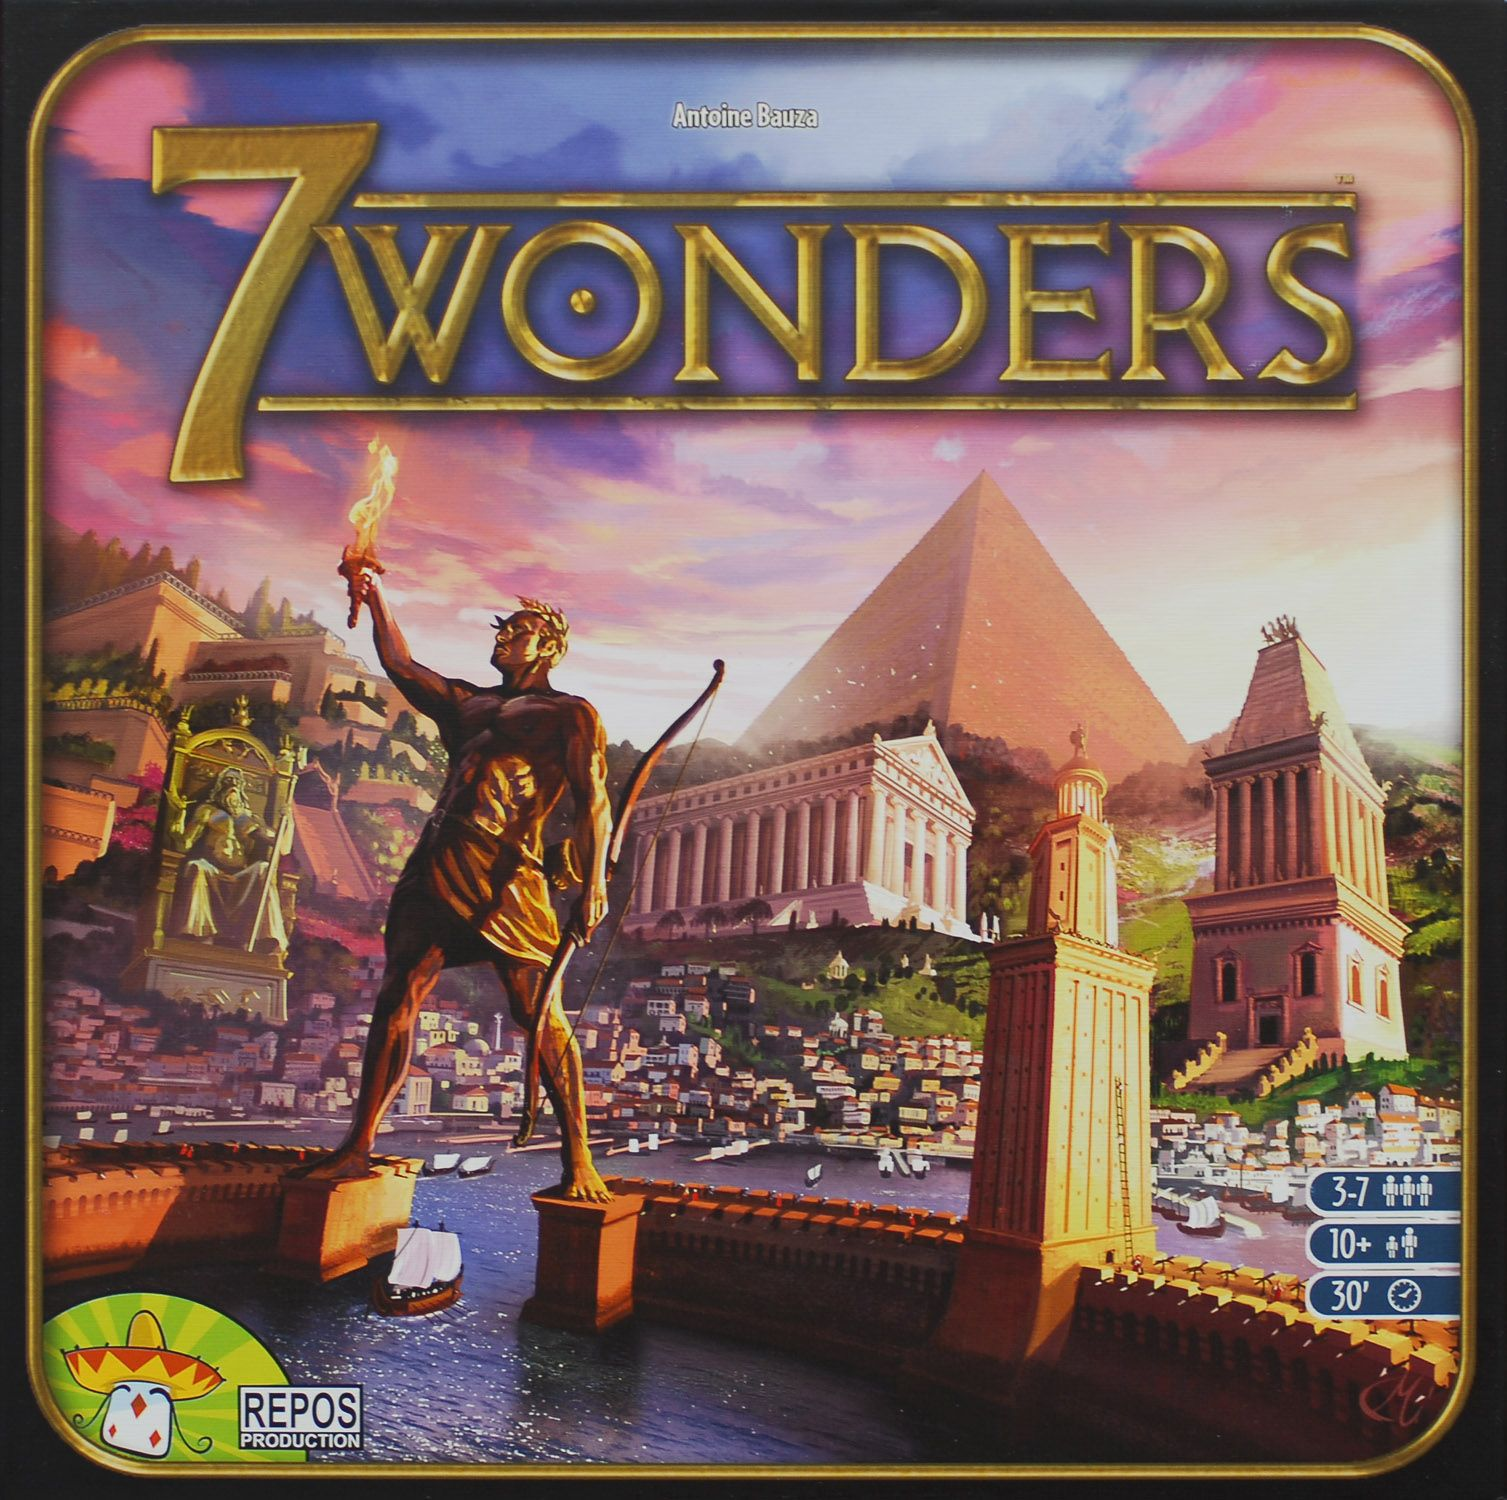 7 Wonders Cover - Repos Production